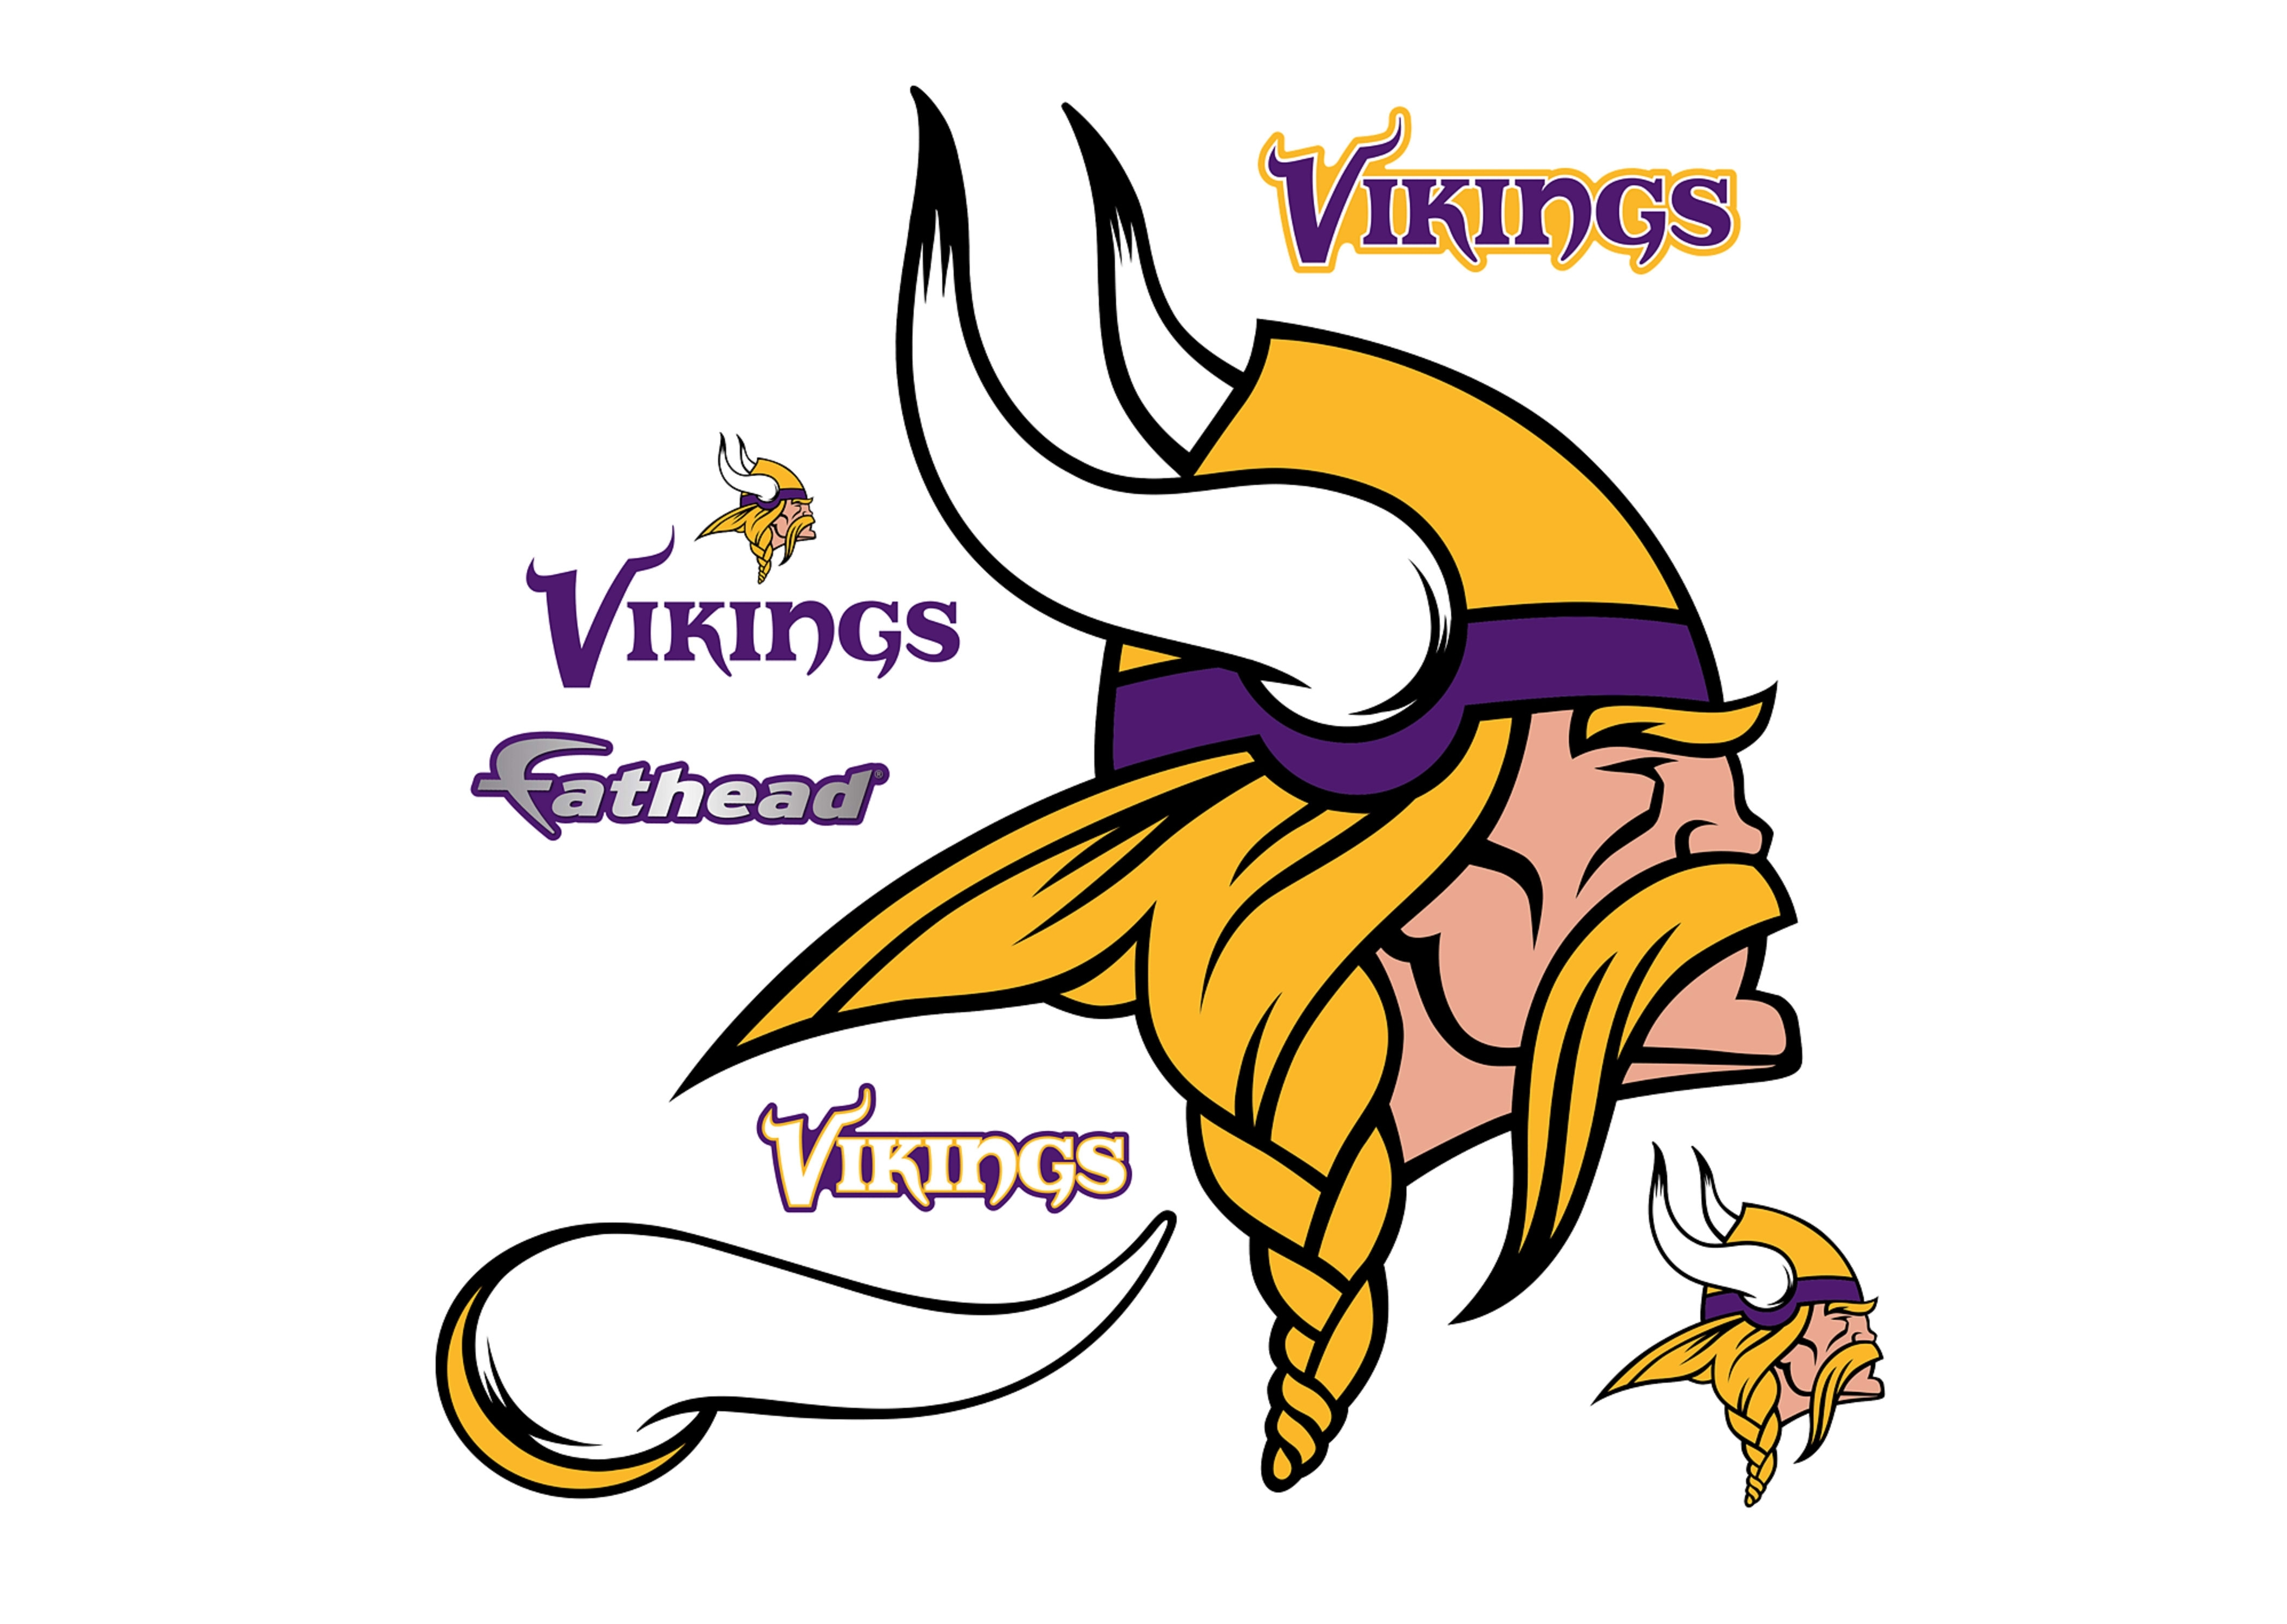 minnesota vikings logo wall decal | shop fathead® for minnesota